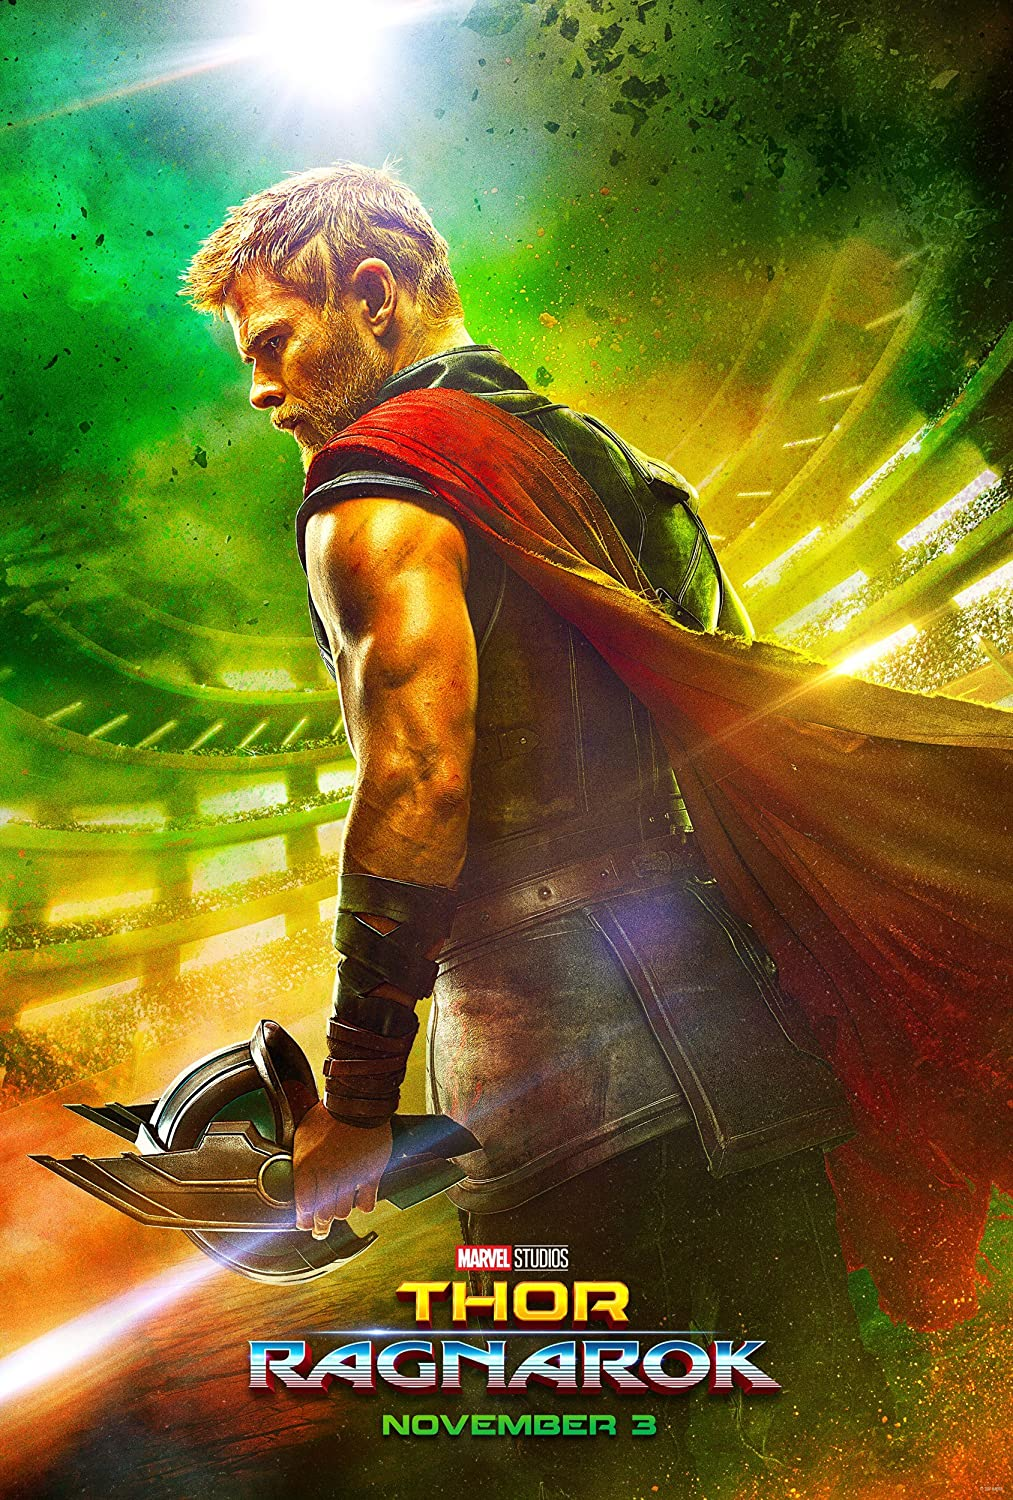 Thor 3 : Ragnarok (2017) - Thor Side - 13 in x 19 in Movie Poster Flyer BORDERLESS + Free 1 Tile Magnet